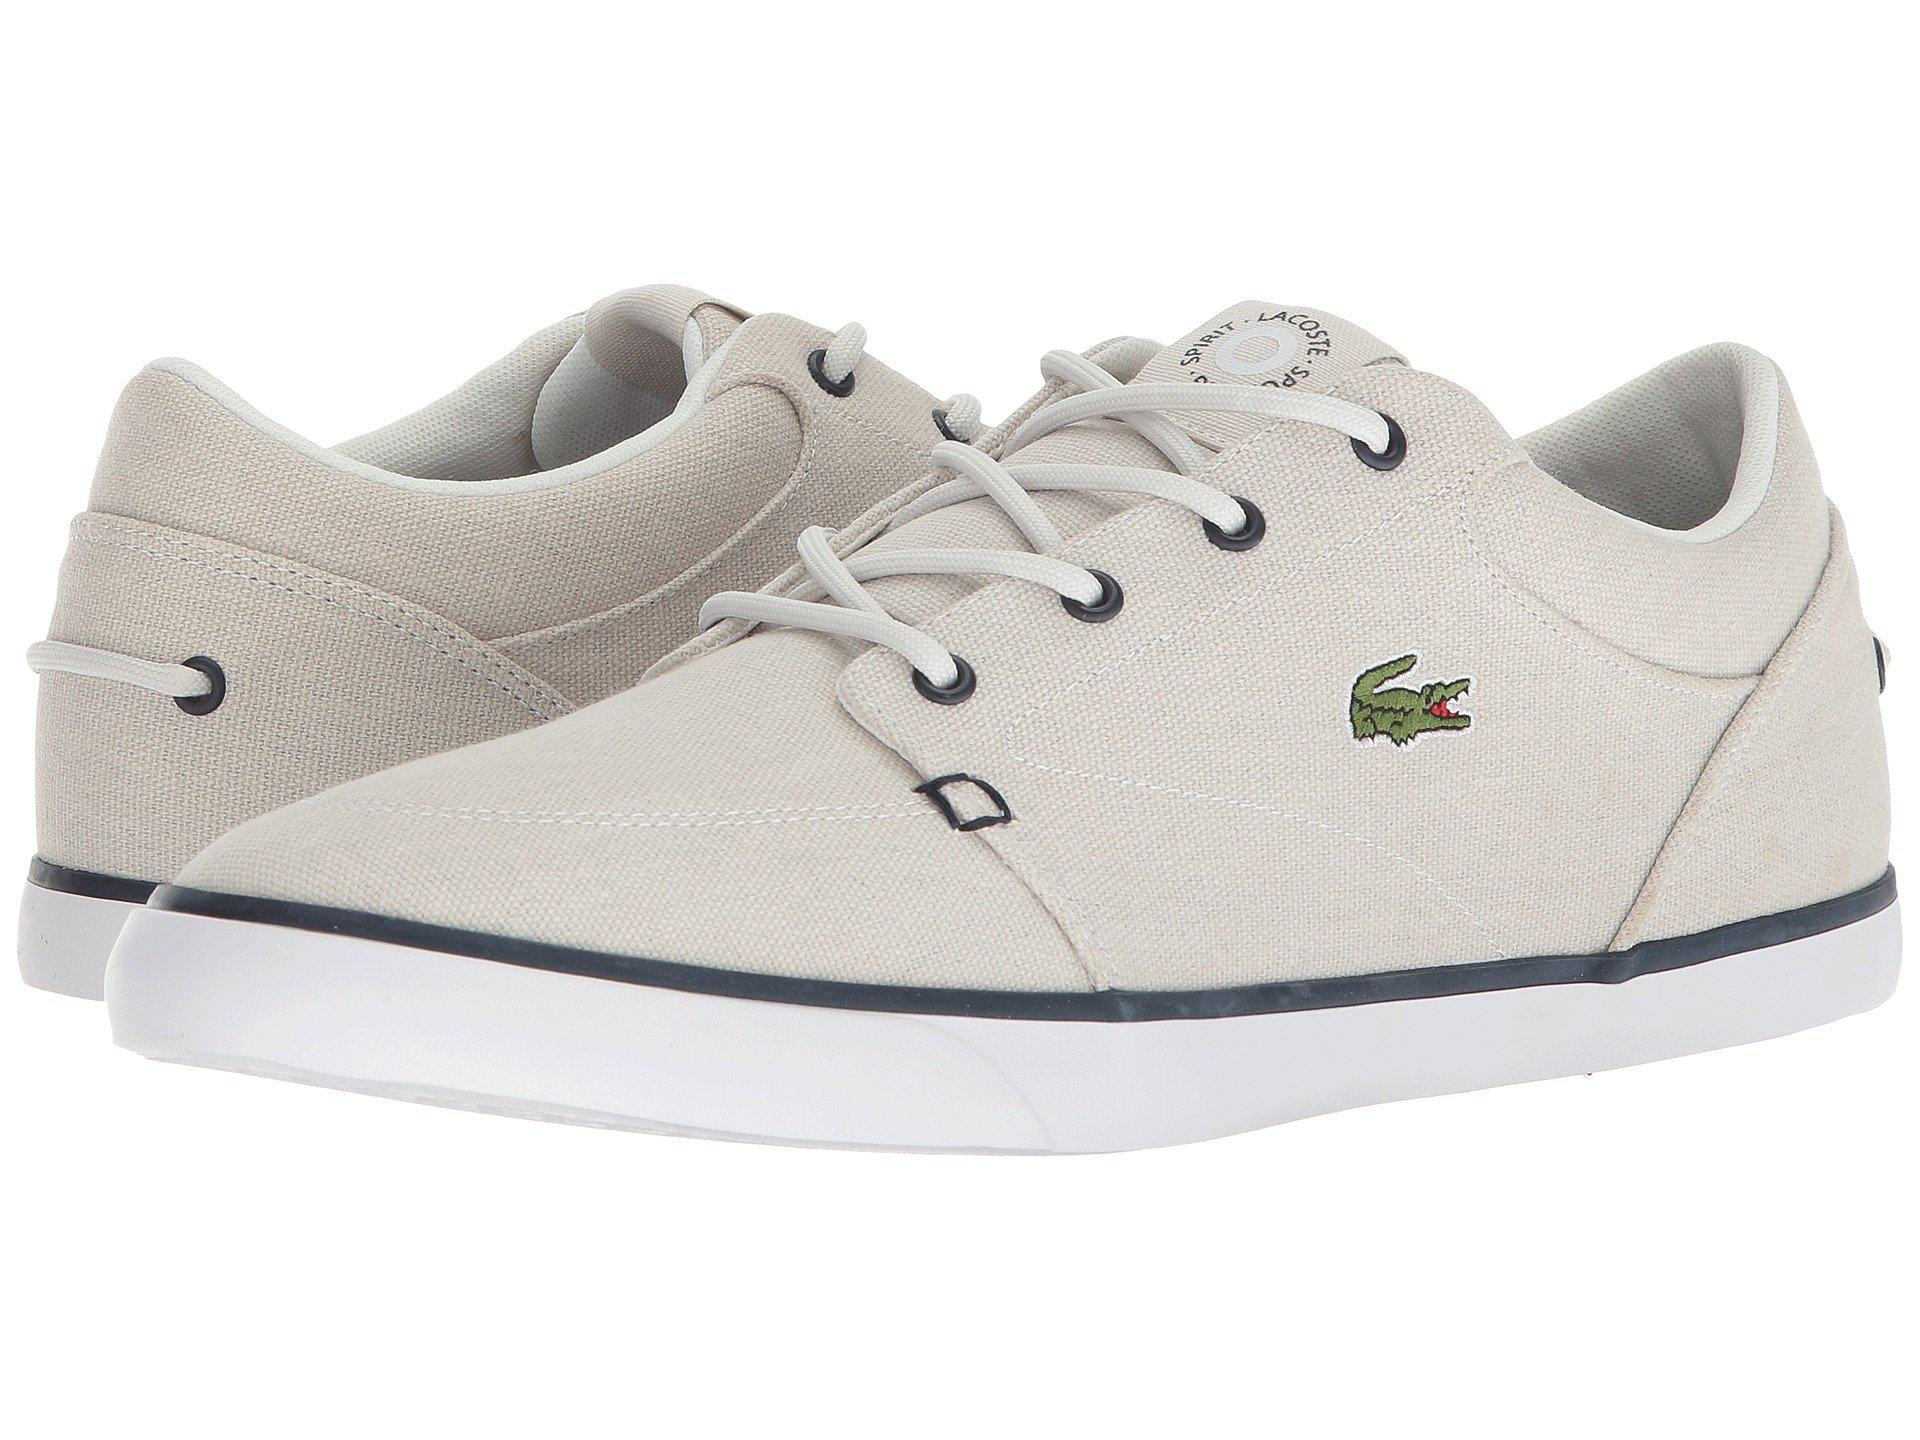 4873ef70b Lyst - Lacoste Bayliss 118 3 (navy light Blue) Men s Shoes in White ...